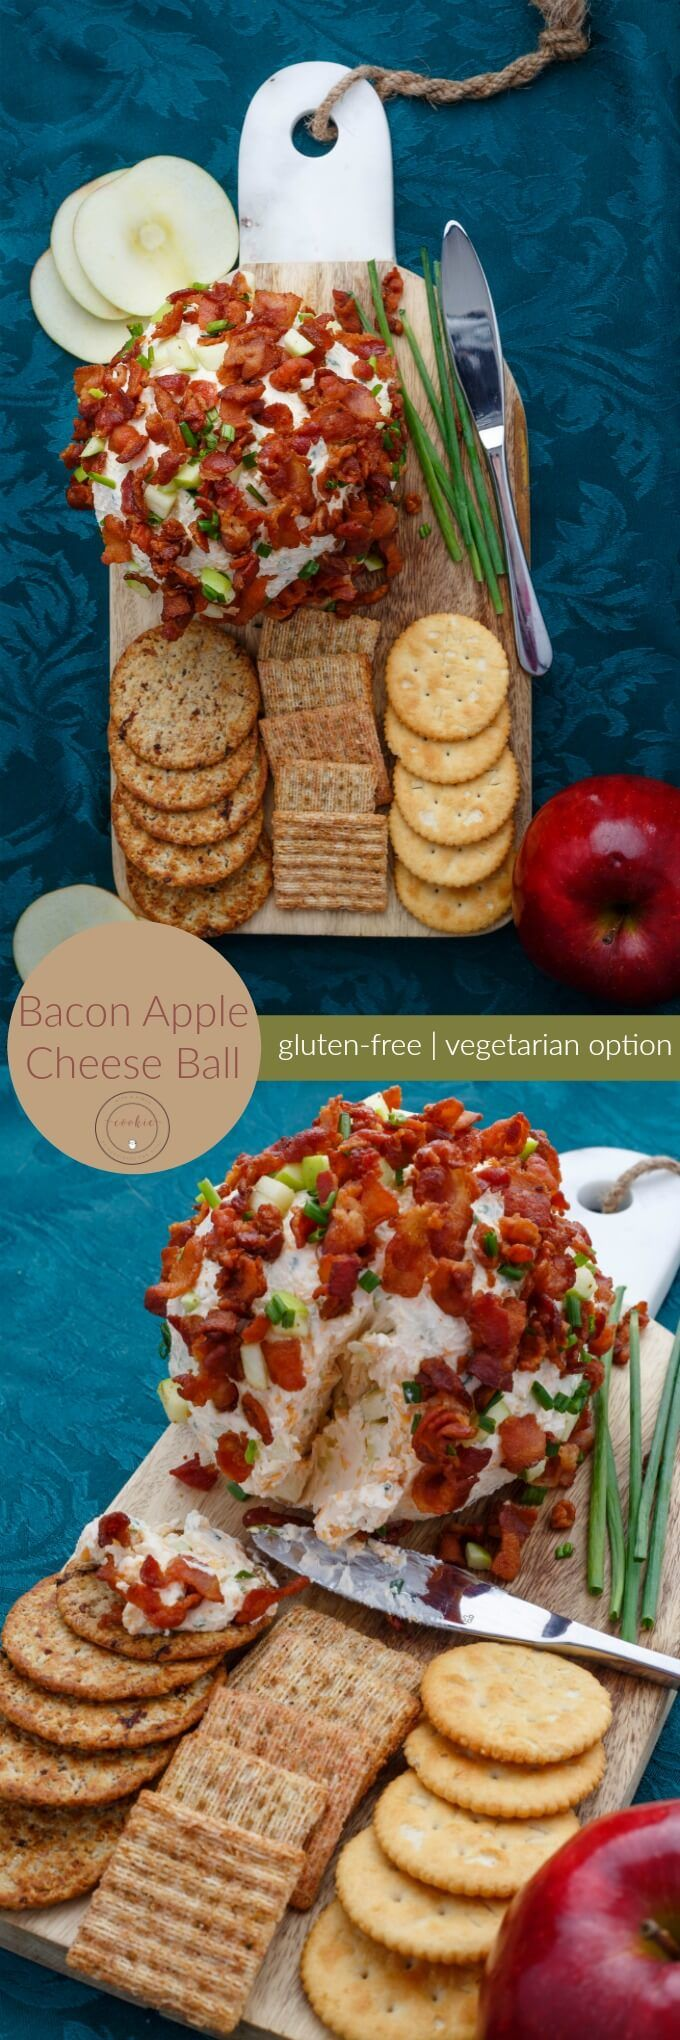 Bacon Apple Cheese Ball | http://thecookiewriter.com | #cheeseball #bacon #appetizer #Christmas #apples #onappleaday #sponsored